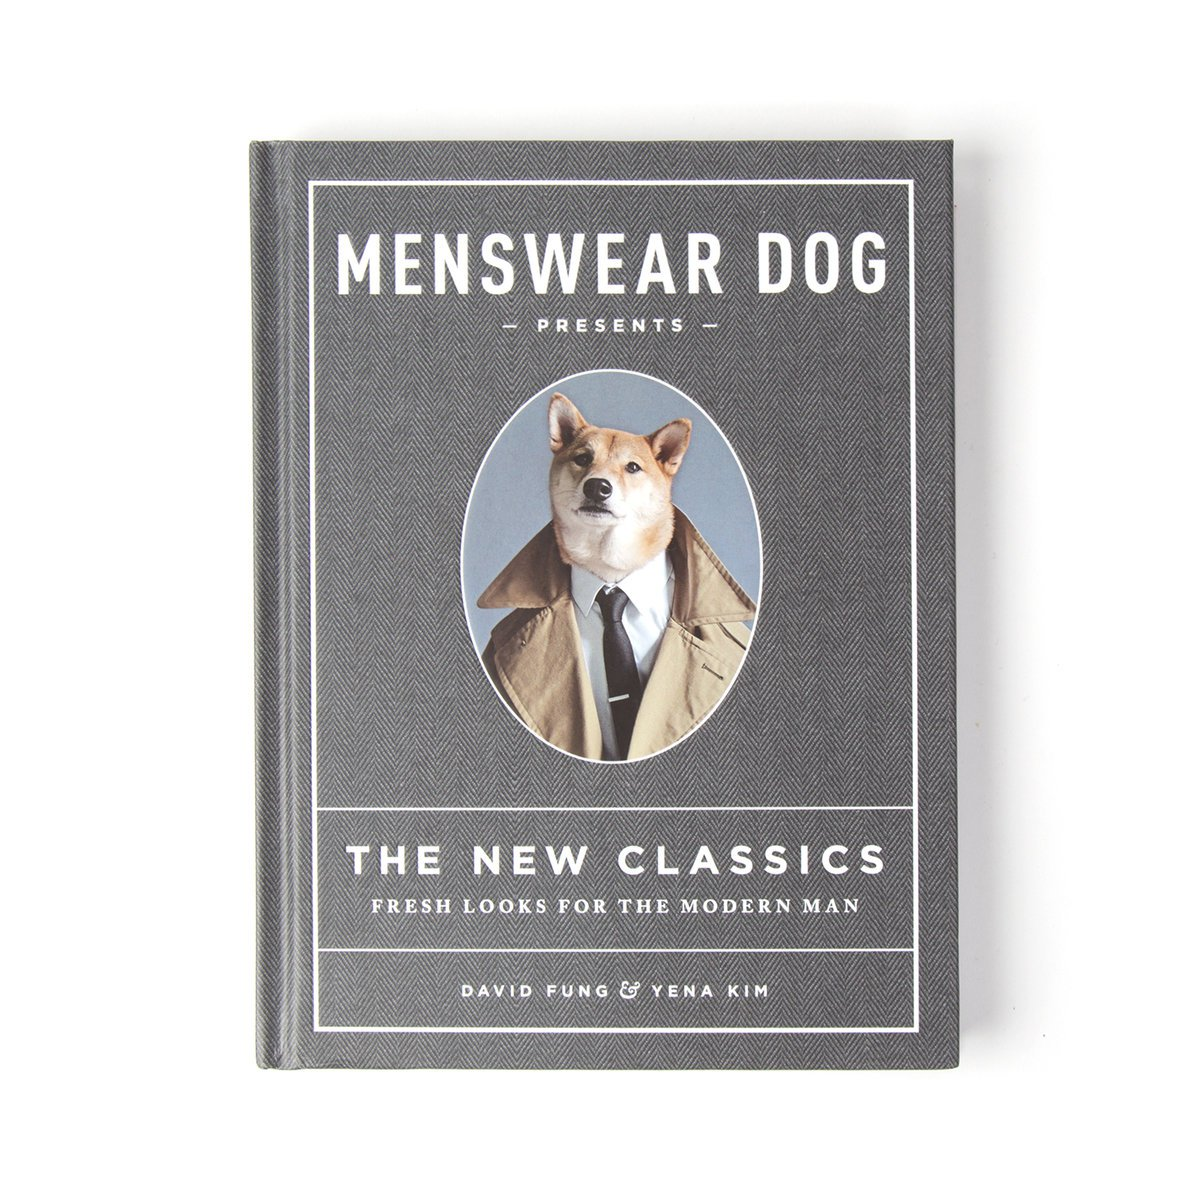 Happy #NationalPuppyDay. RT for a chance to win a signed copy of @Mensweardog Presents: The New Classics. https://t.co/szxIfAytHs